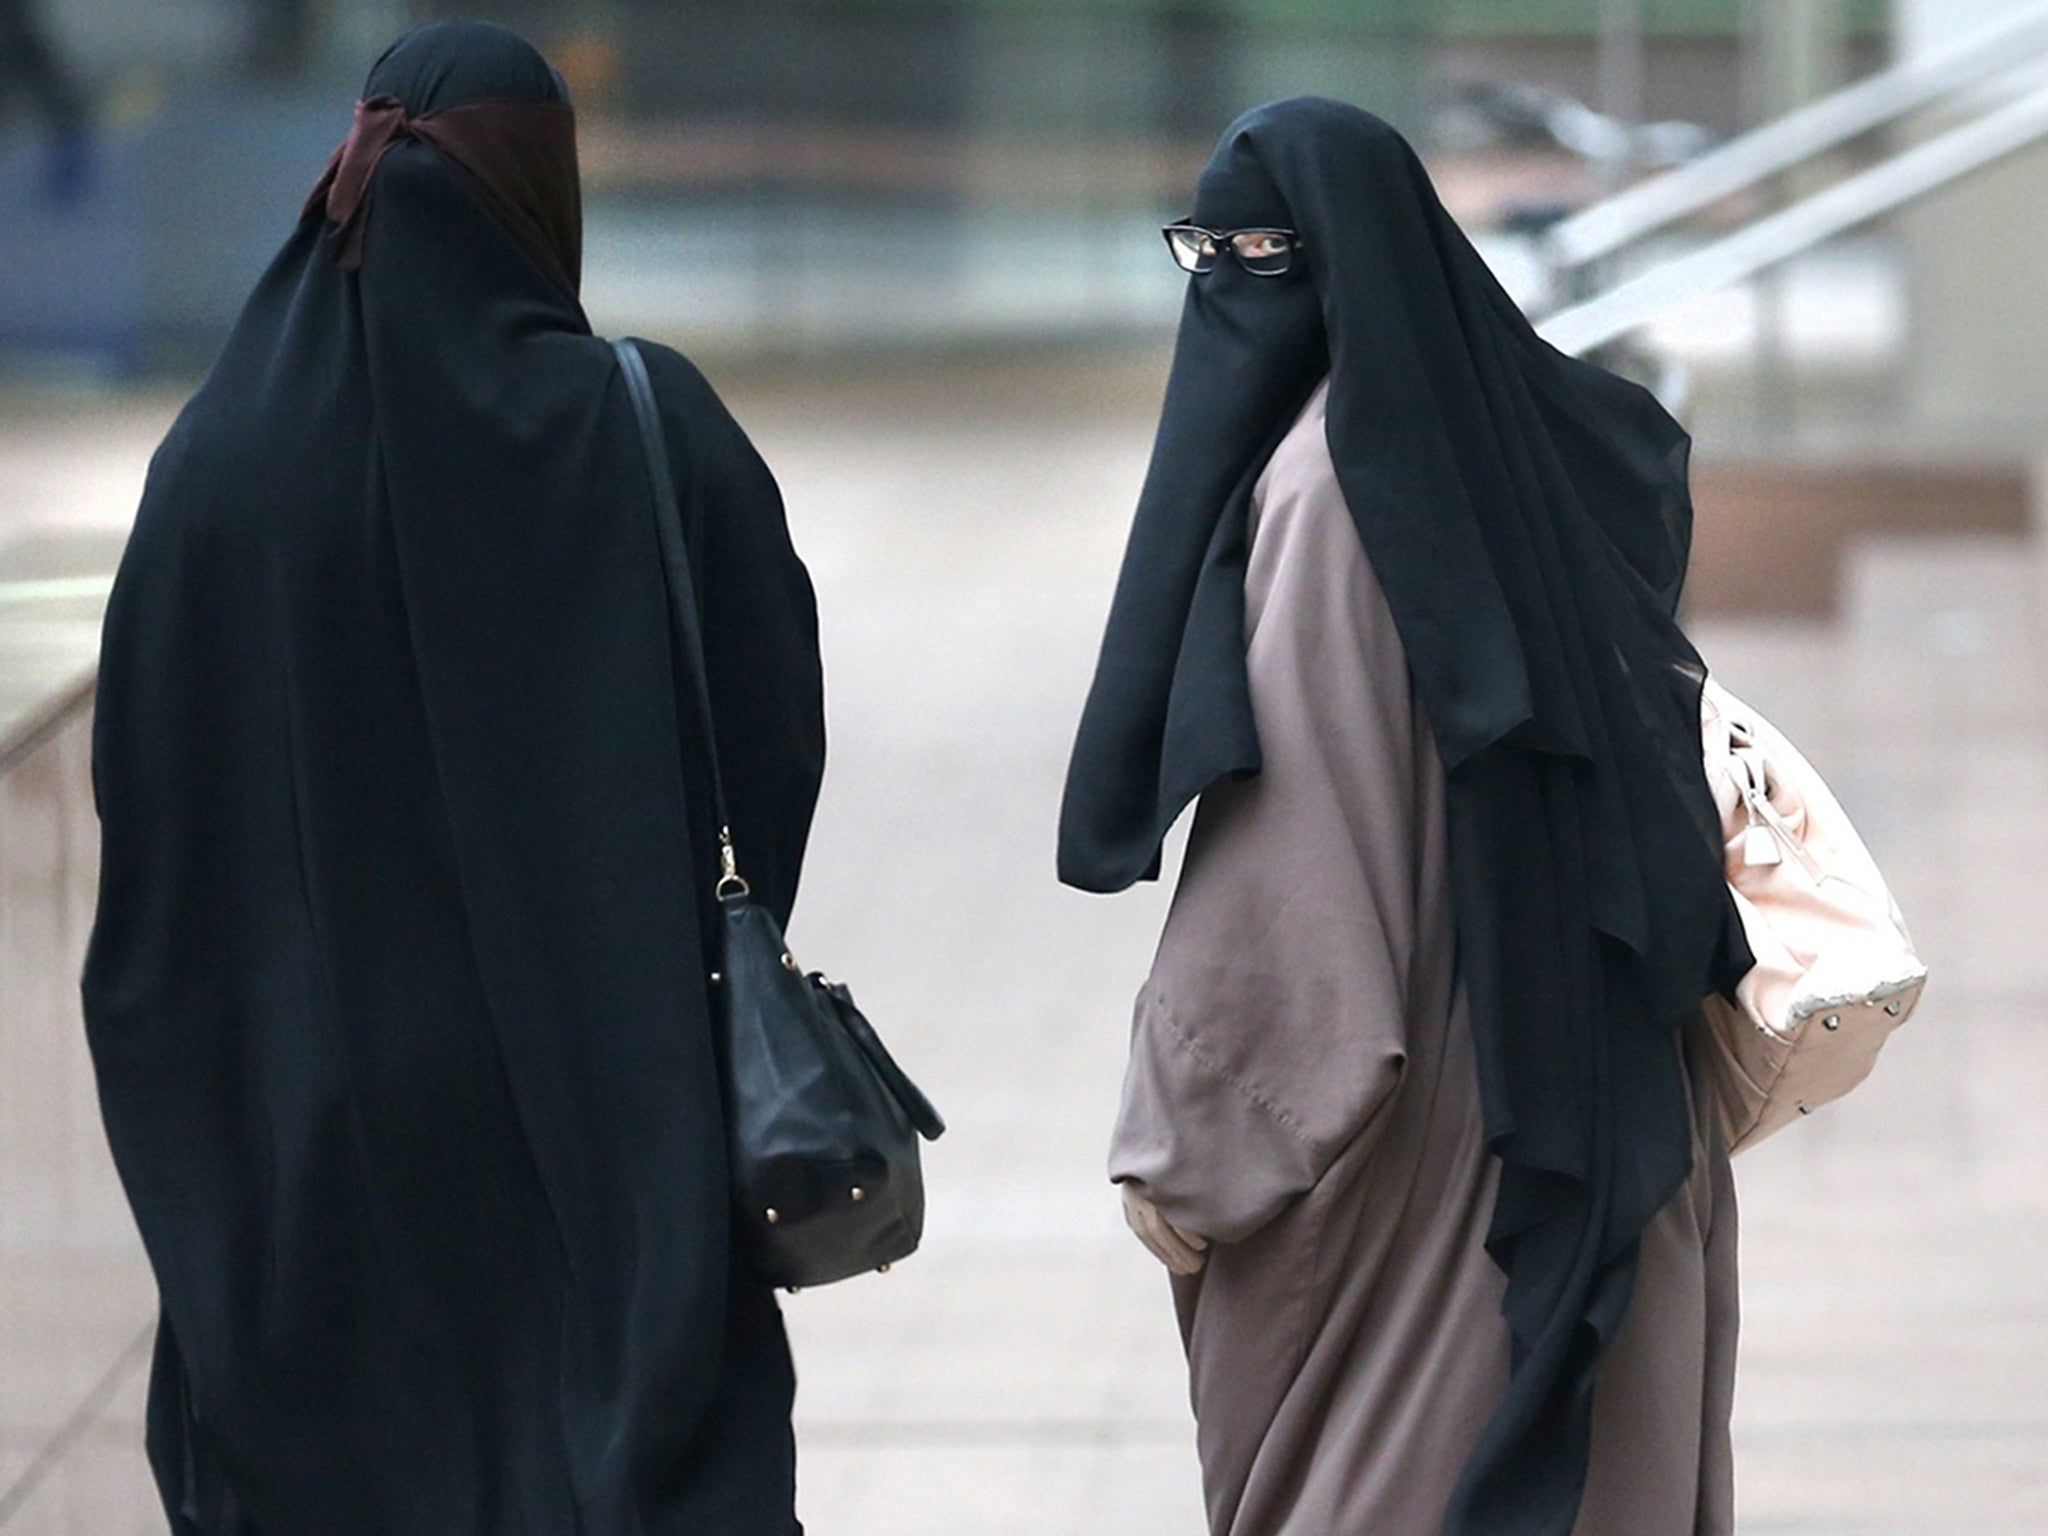 Islamic Face Veil To Be Banned In Latvia